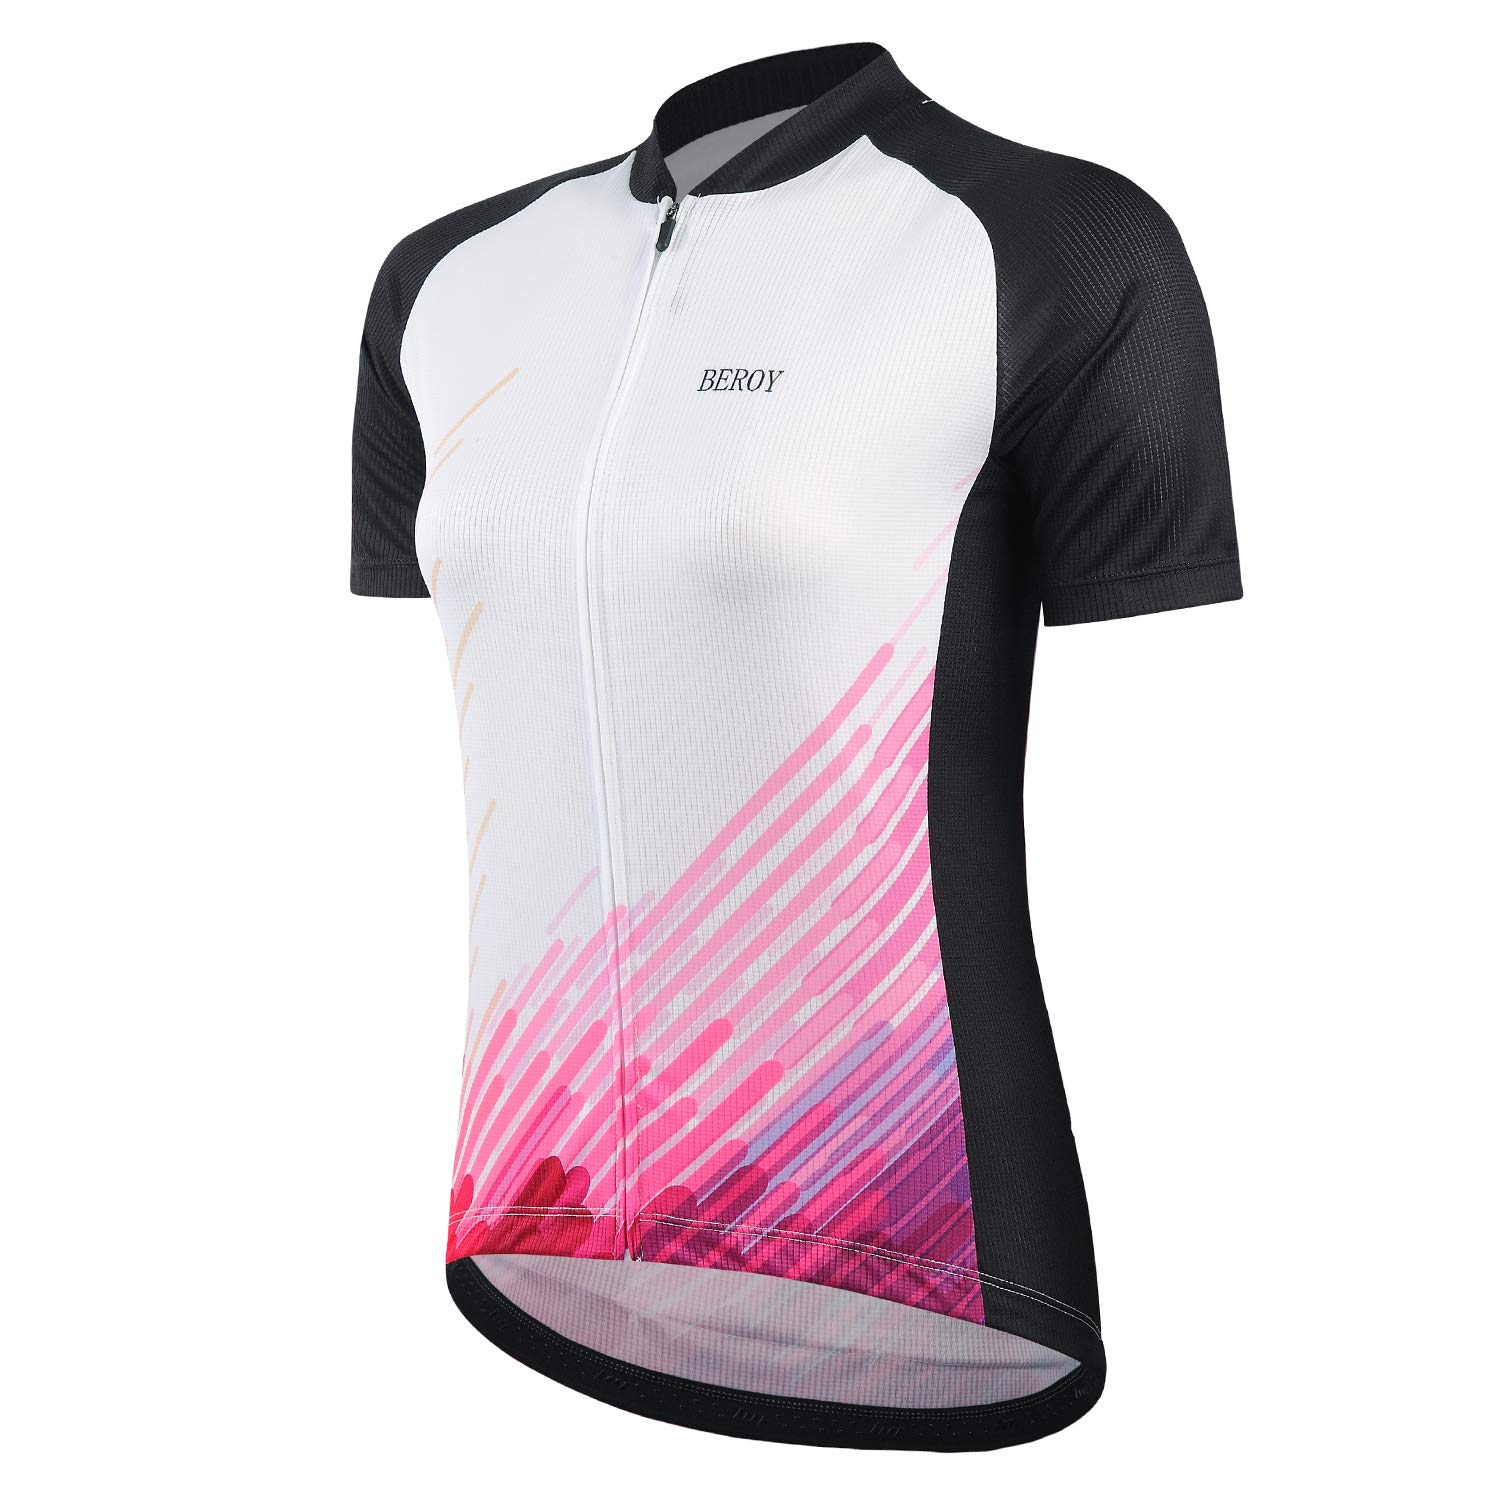 beroy Women Cycling Jersey Short Sleeve with Three Pockets,Ladies Bike Jerseys Tank Tops(S Red) by beroy